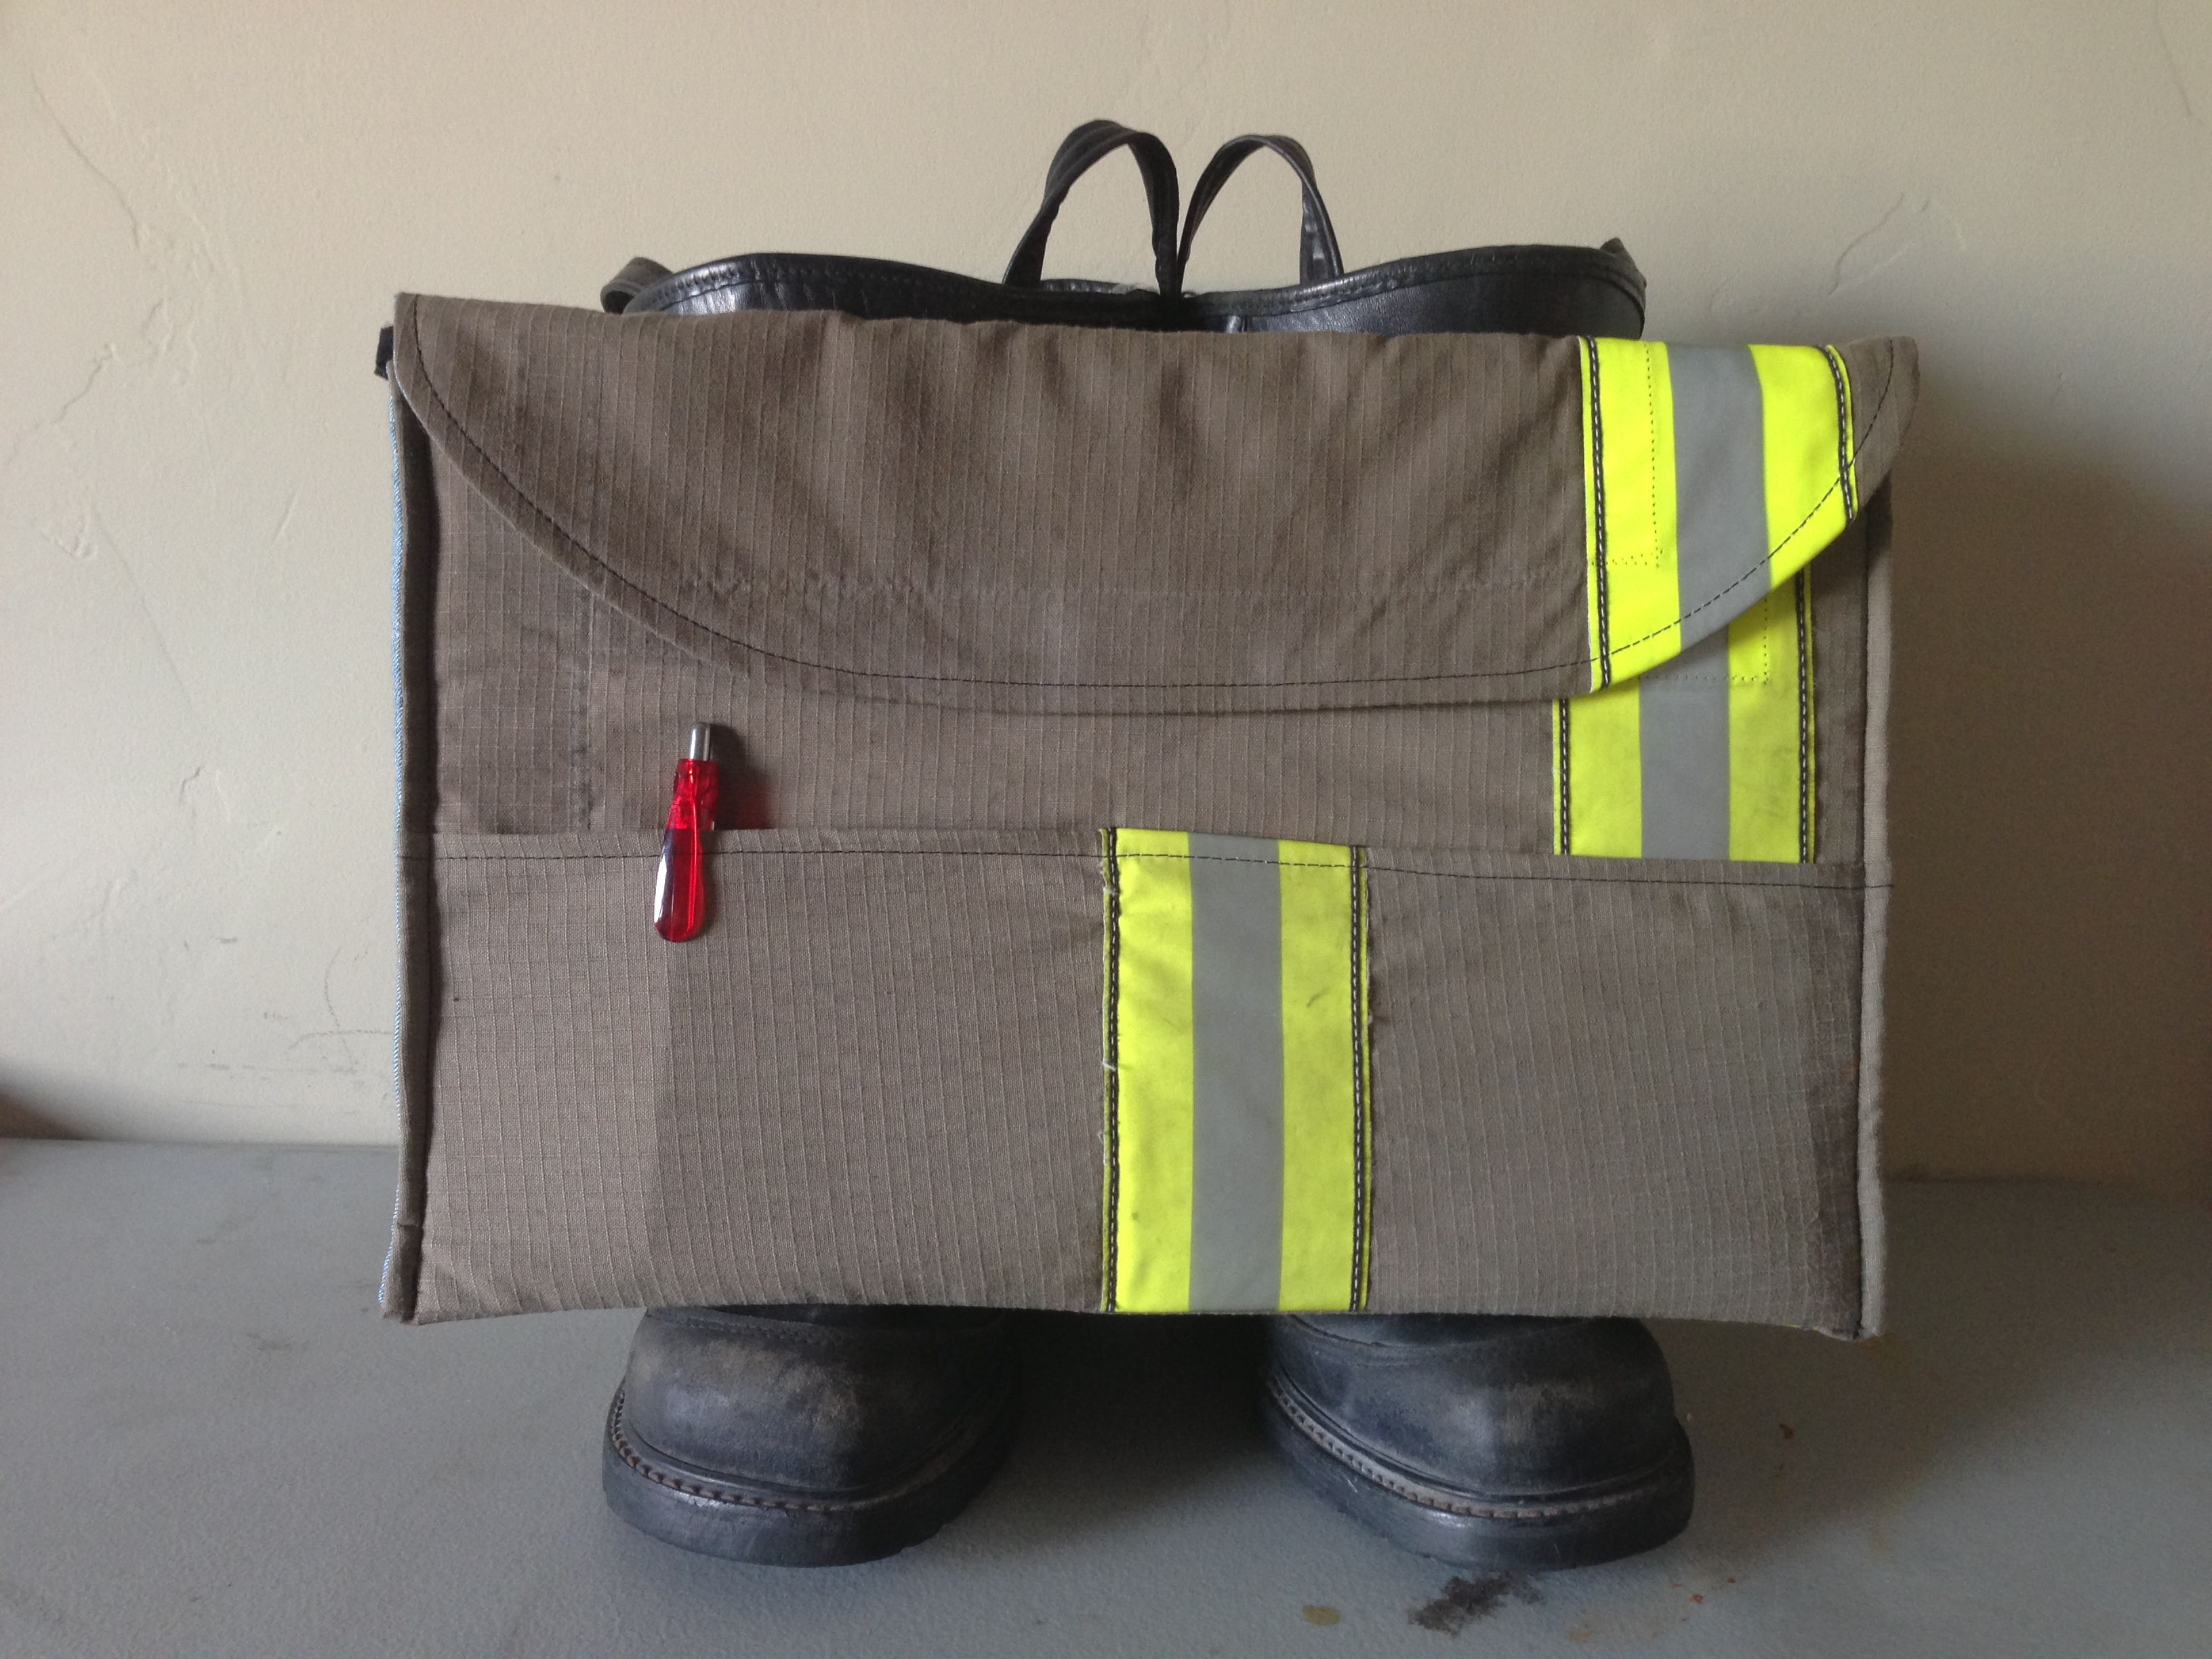 Recycled bunker gear bags - Laptop Sleeve Made From Recycled Firefighter Turnout Gear Www Reskugear Com